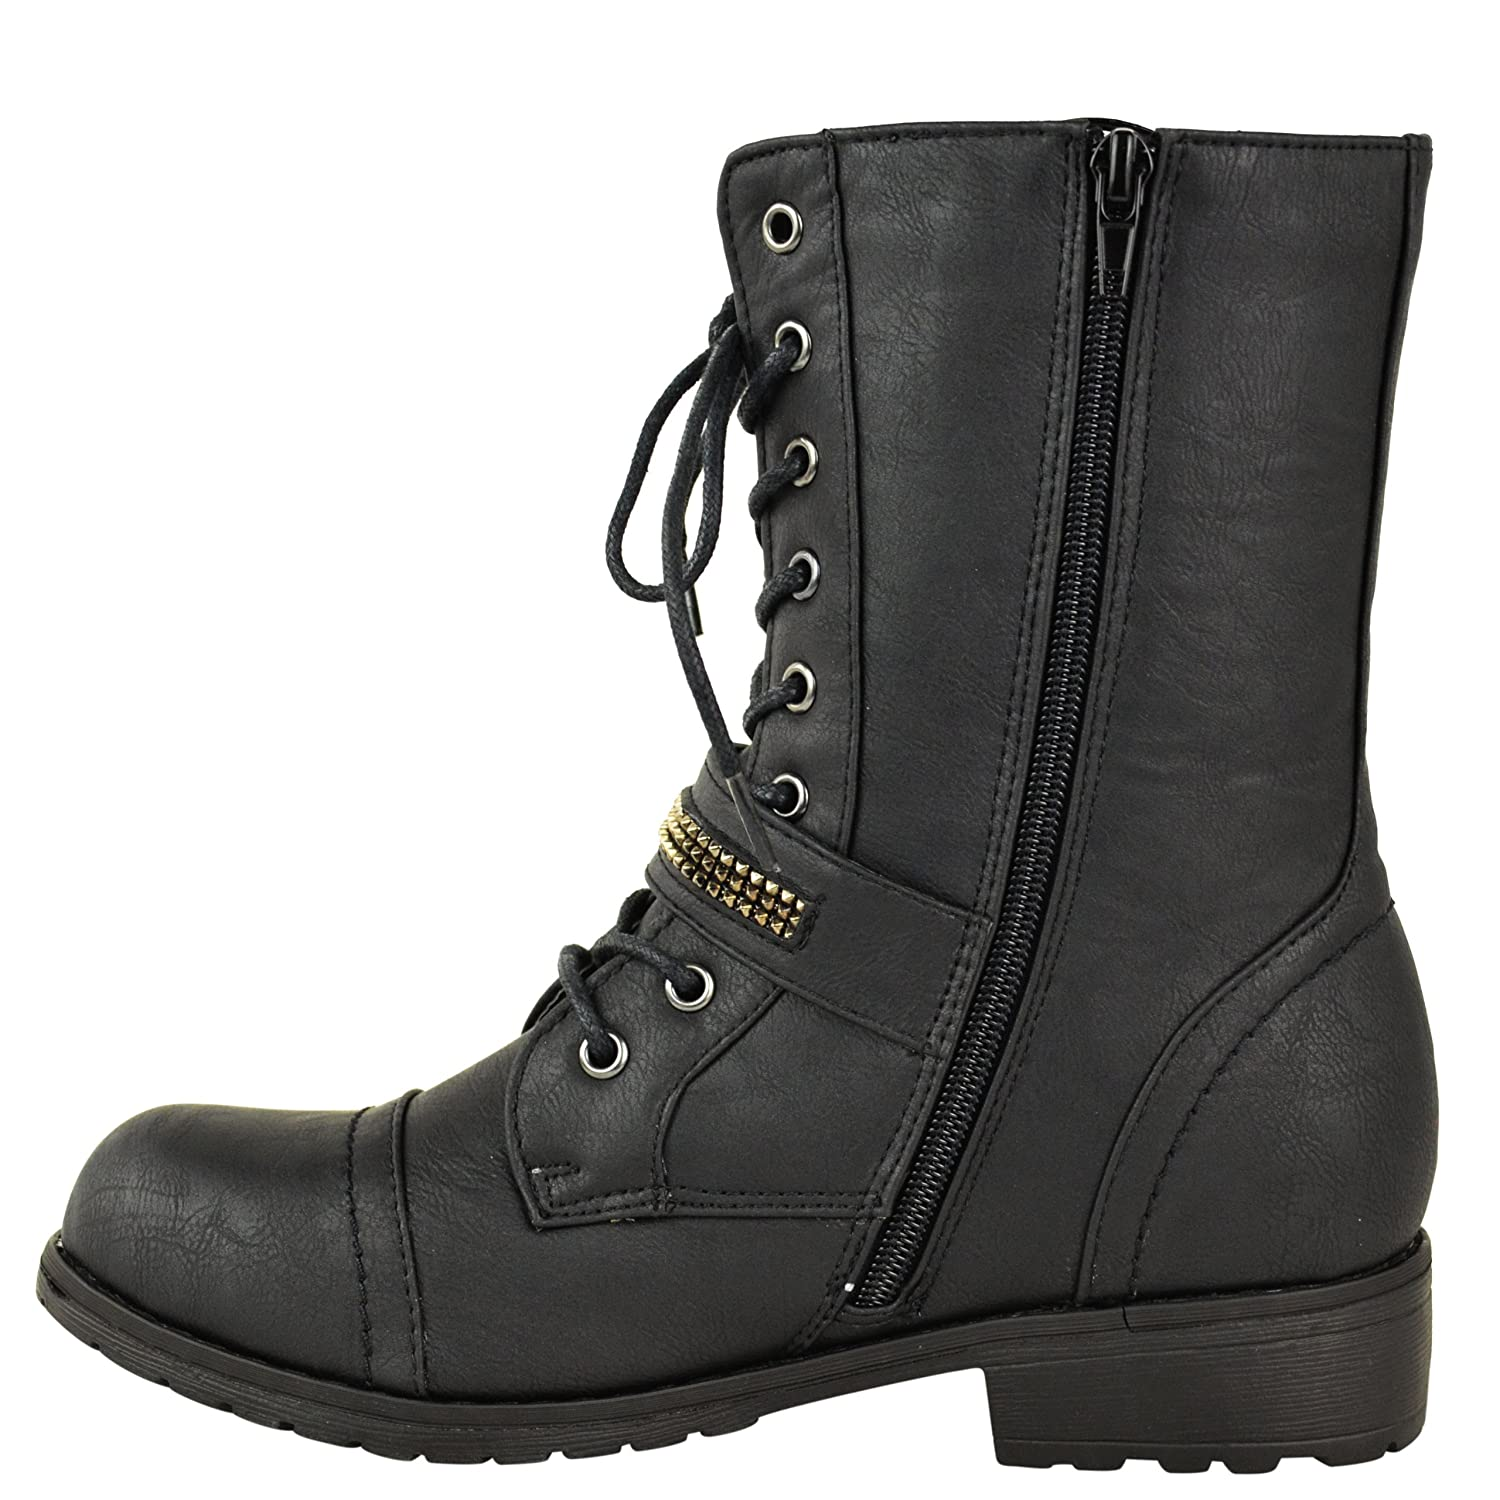 Fashion Thirsty Womens Flat Low Heel Lace Up Army Military Biker Zip Ankle Boots Size